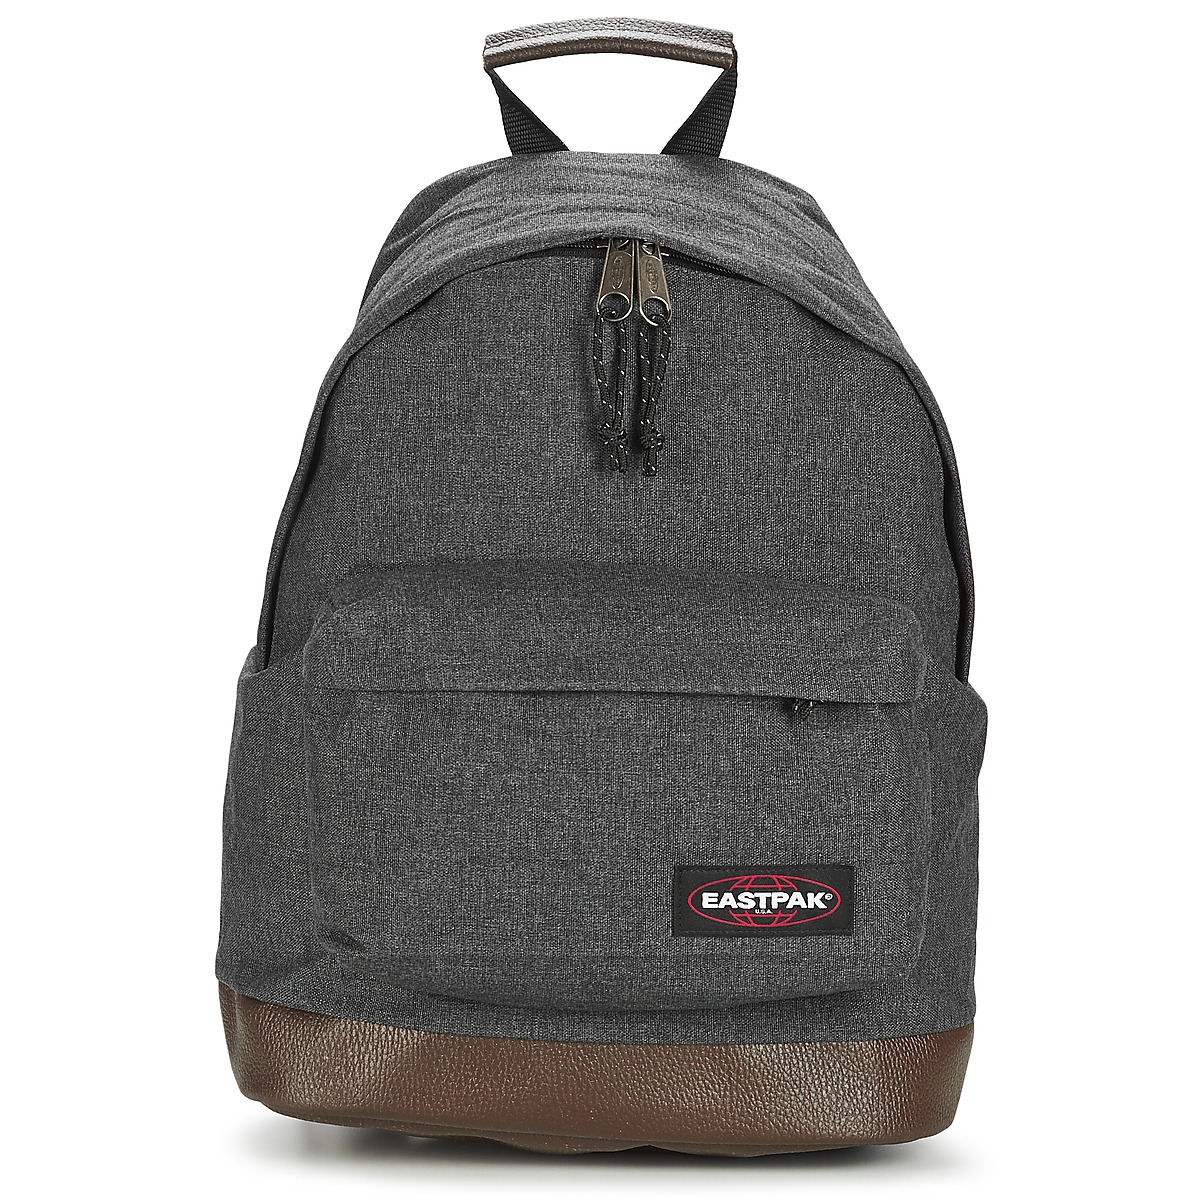 eastpak wyoming 24l gris livraison gratuite avec sacs sacs dos 70 99. Black Bedroom Furniture Sets. Home Design Ideas